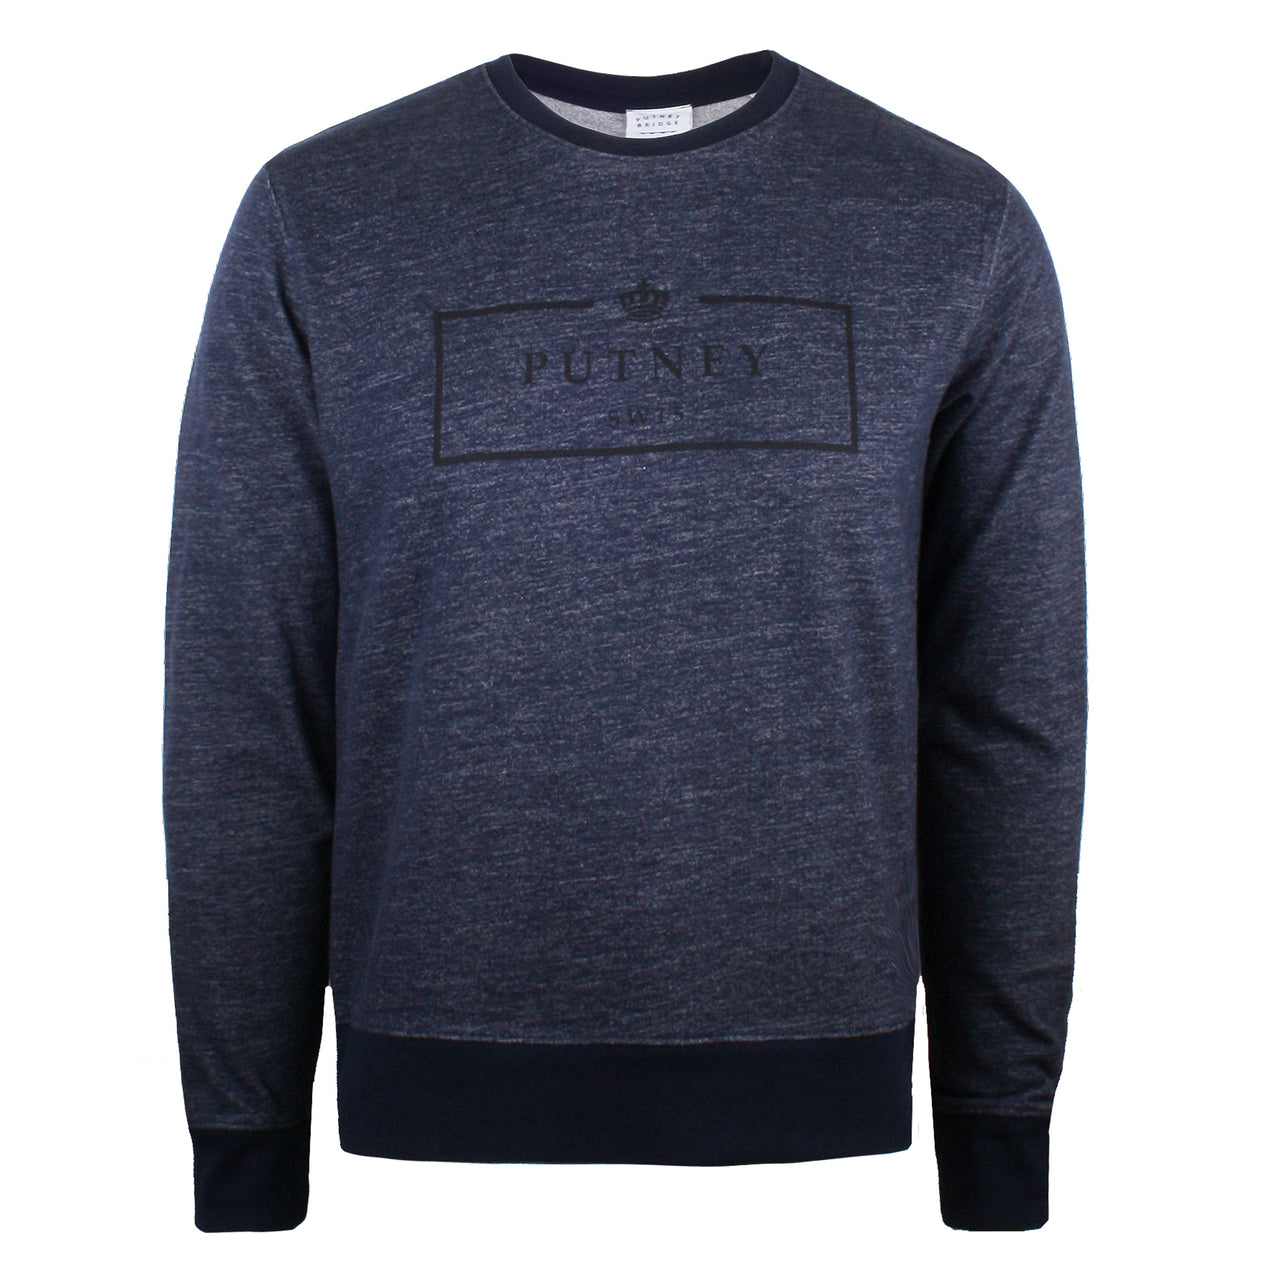 SW15 Boxed Sweatshirt - French Navy